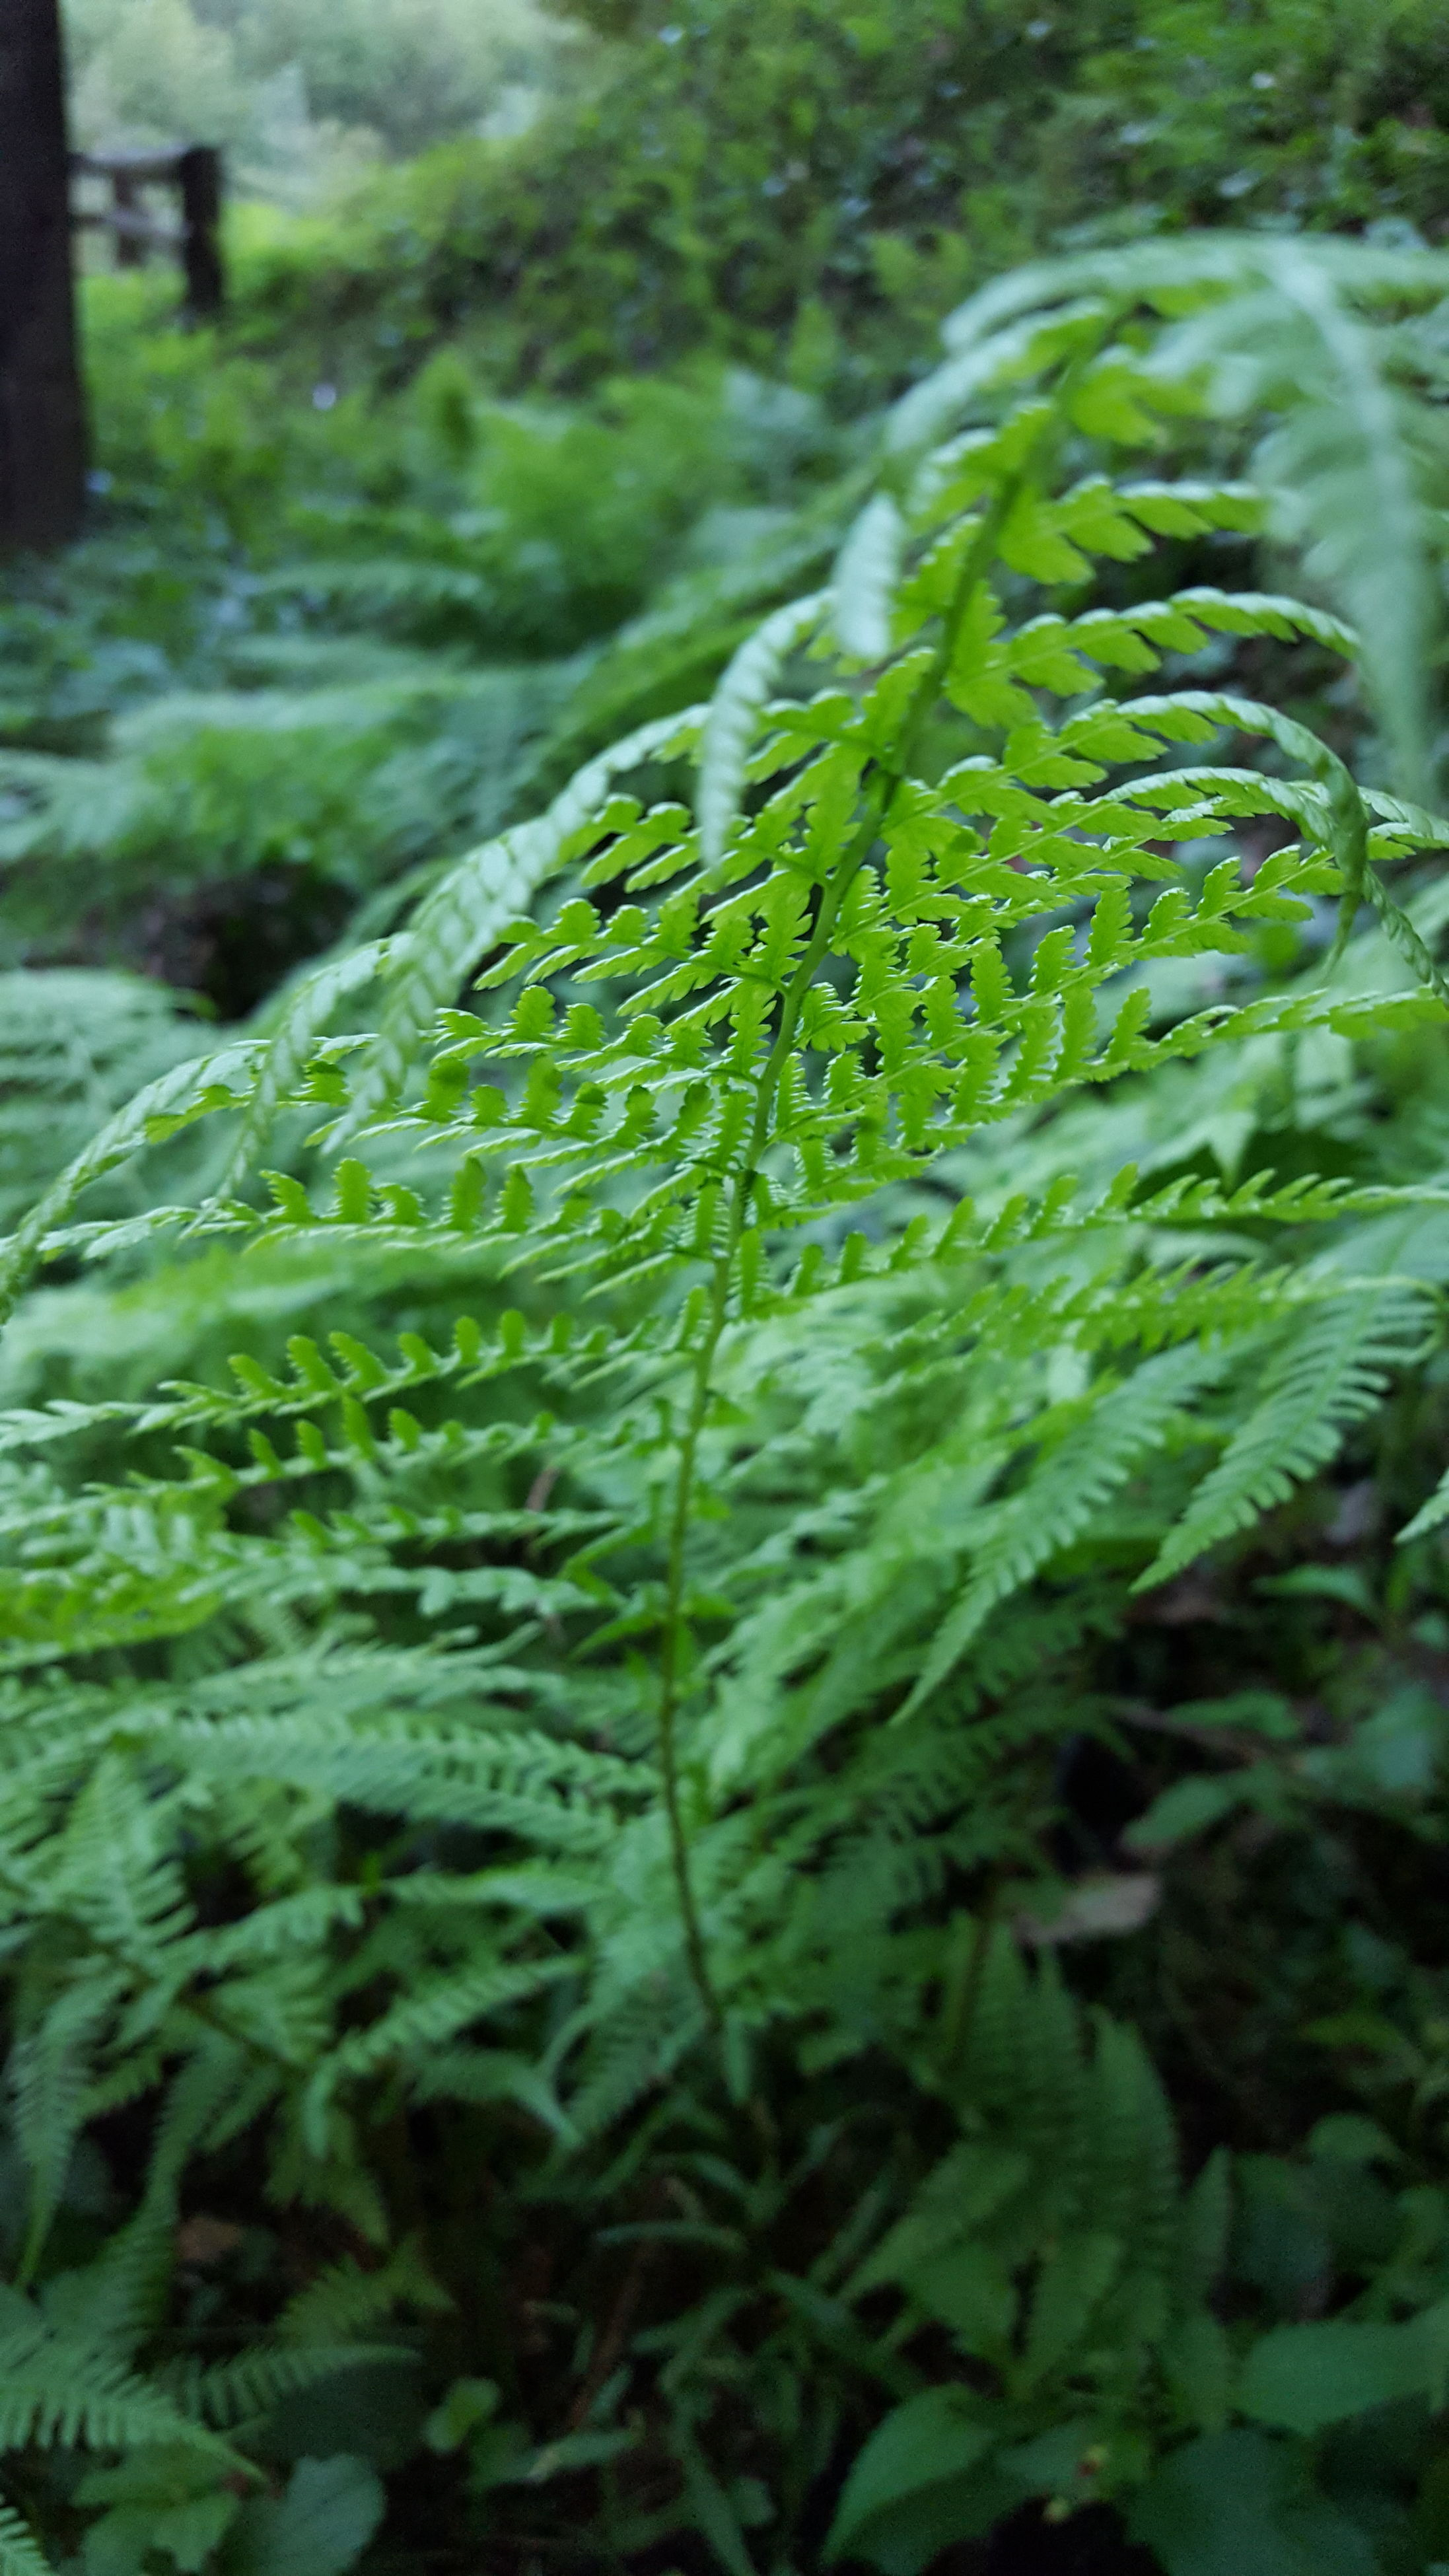 green color, growth, close-up, plant, nature, beauty in nature, water, fern, freshness, focus on foreground, scenics, selective focus, day, fragility, lush foliage, outdoors, botany, green, tranquility, non-urban scene, frond, purity